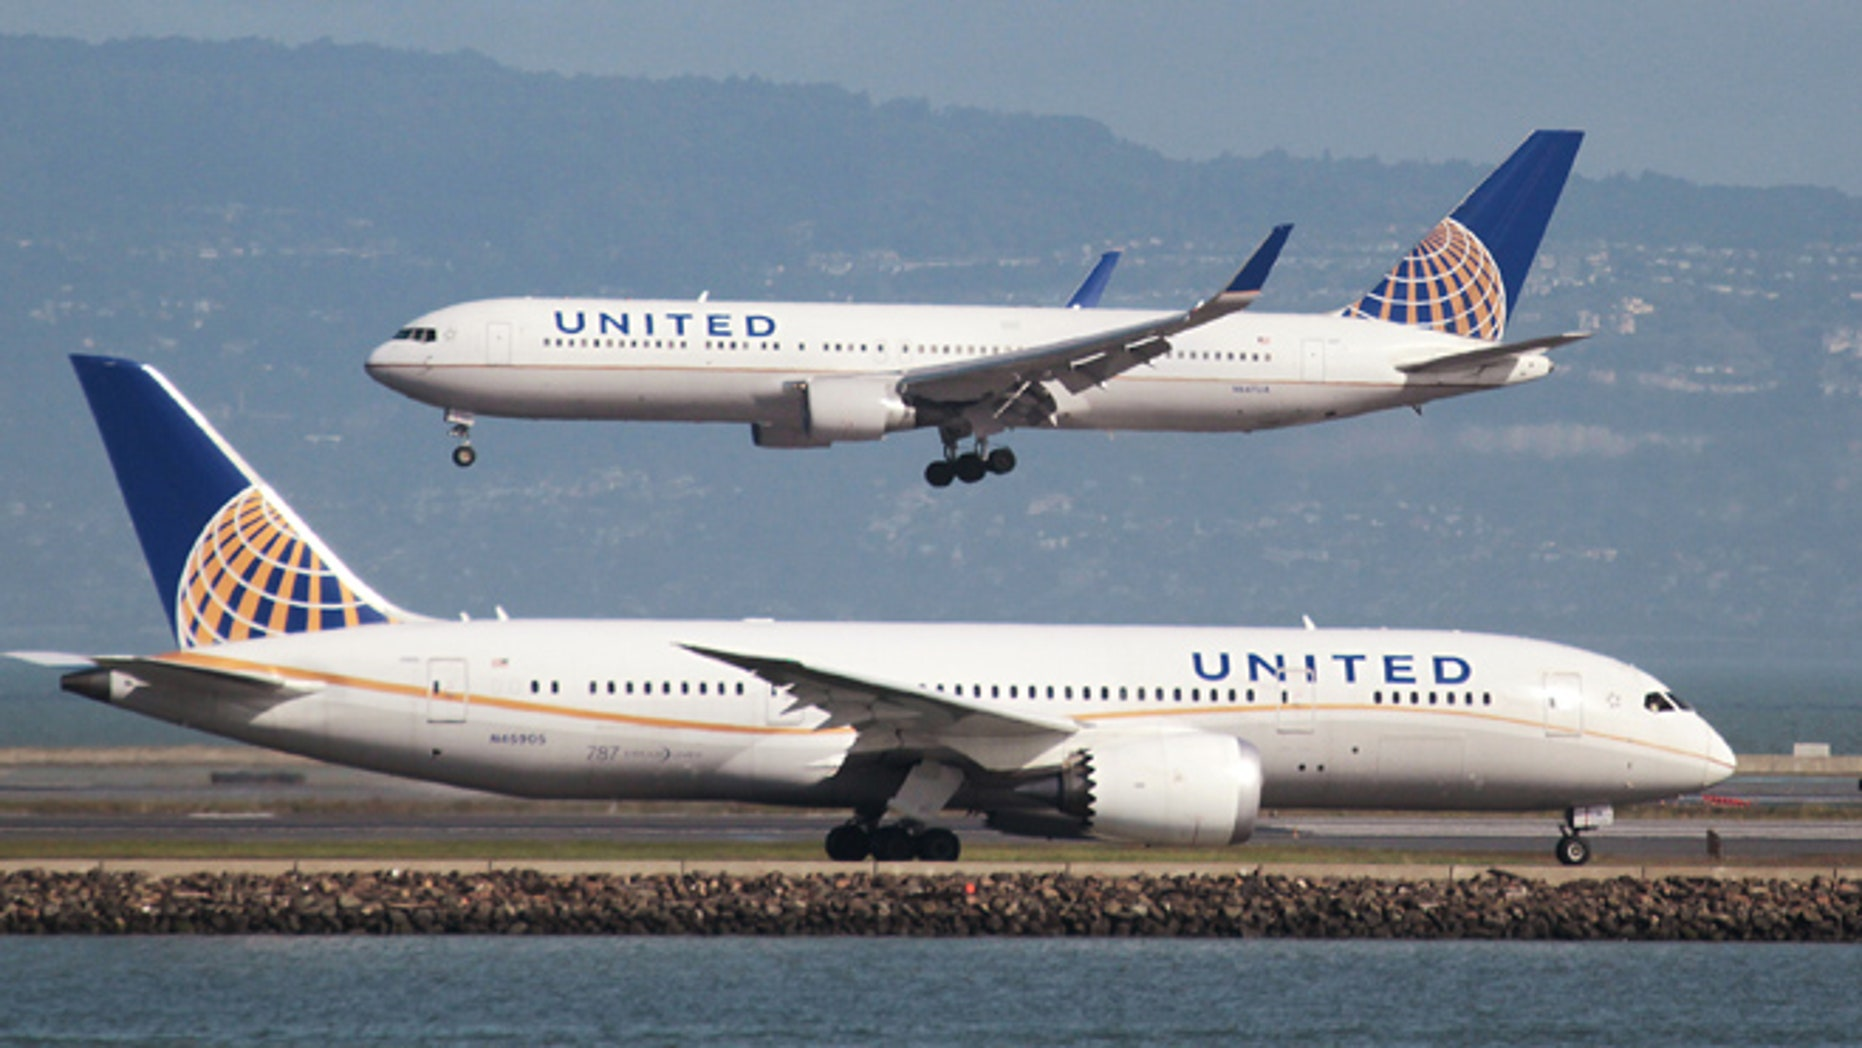 Feb. 7, 2015: A United Airlines Boeing 787 taxis as a United Airlines Boeing 767 lands at San Francisco International Airport, San Francisco, California.